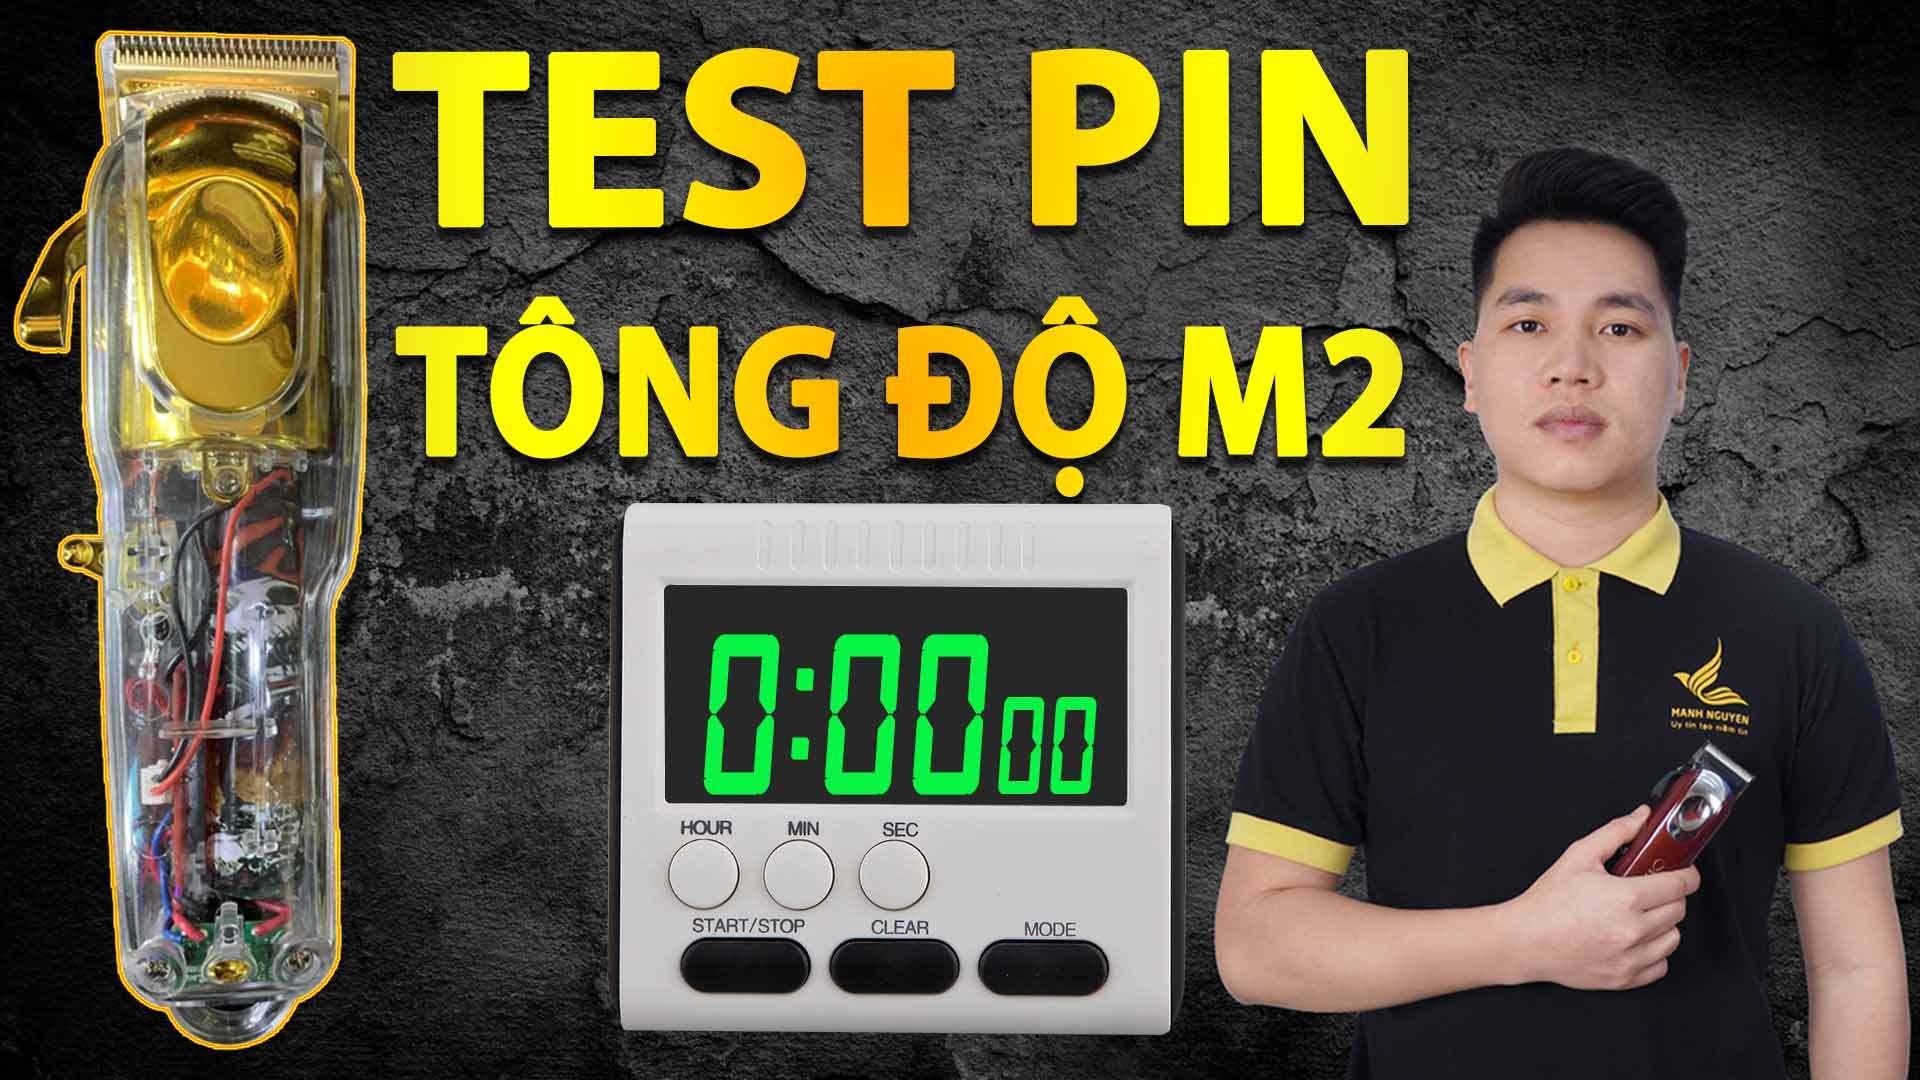 test pin tong do m2